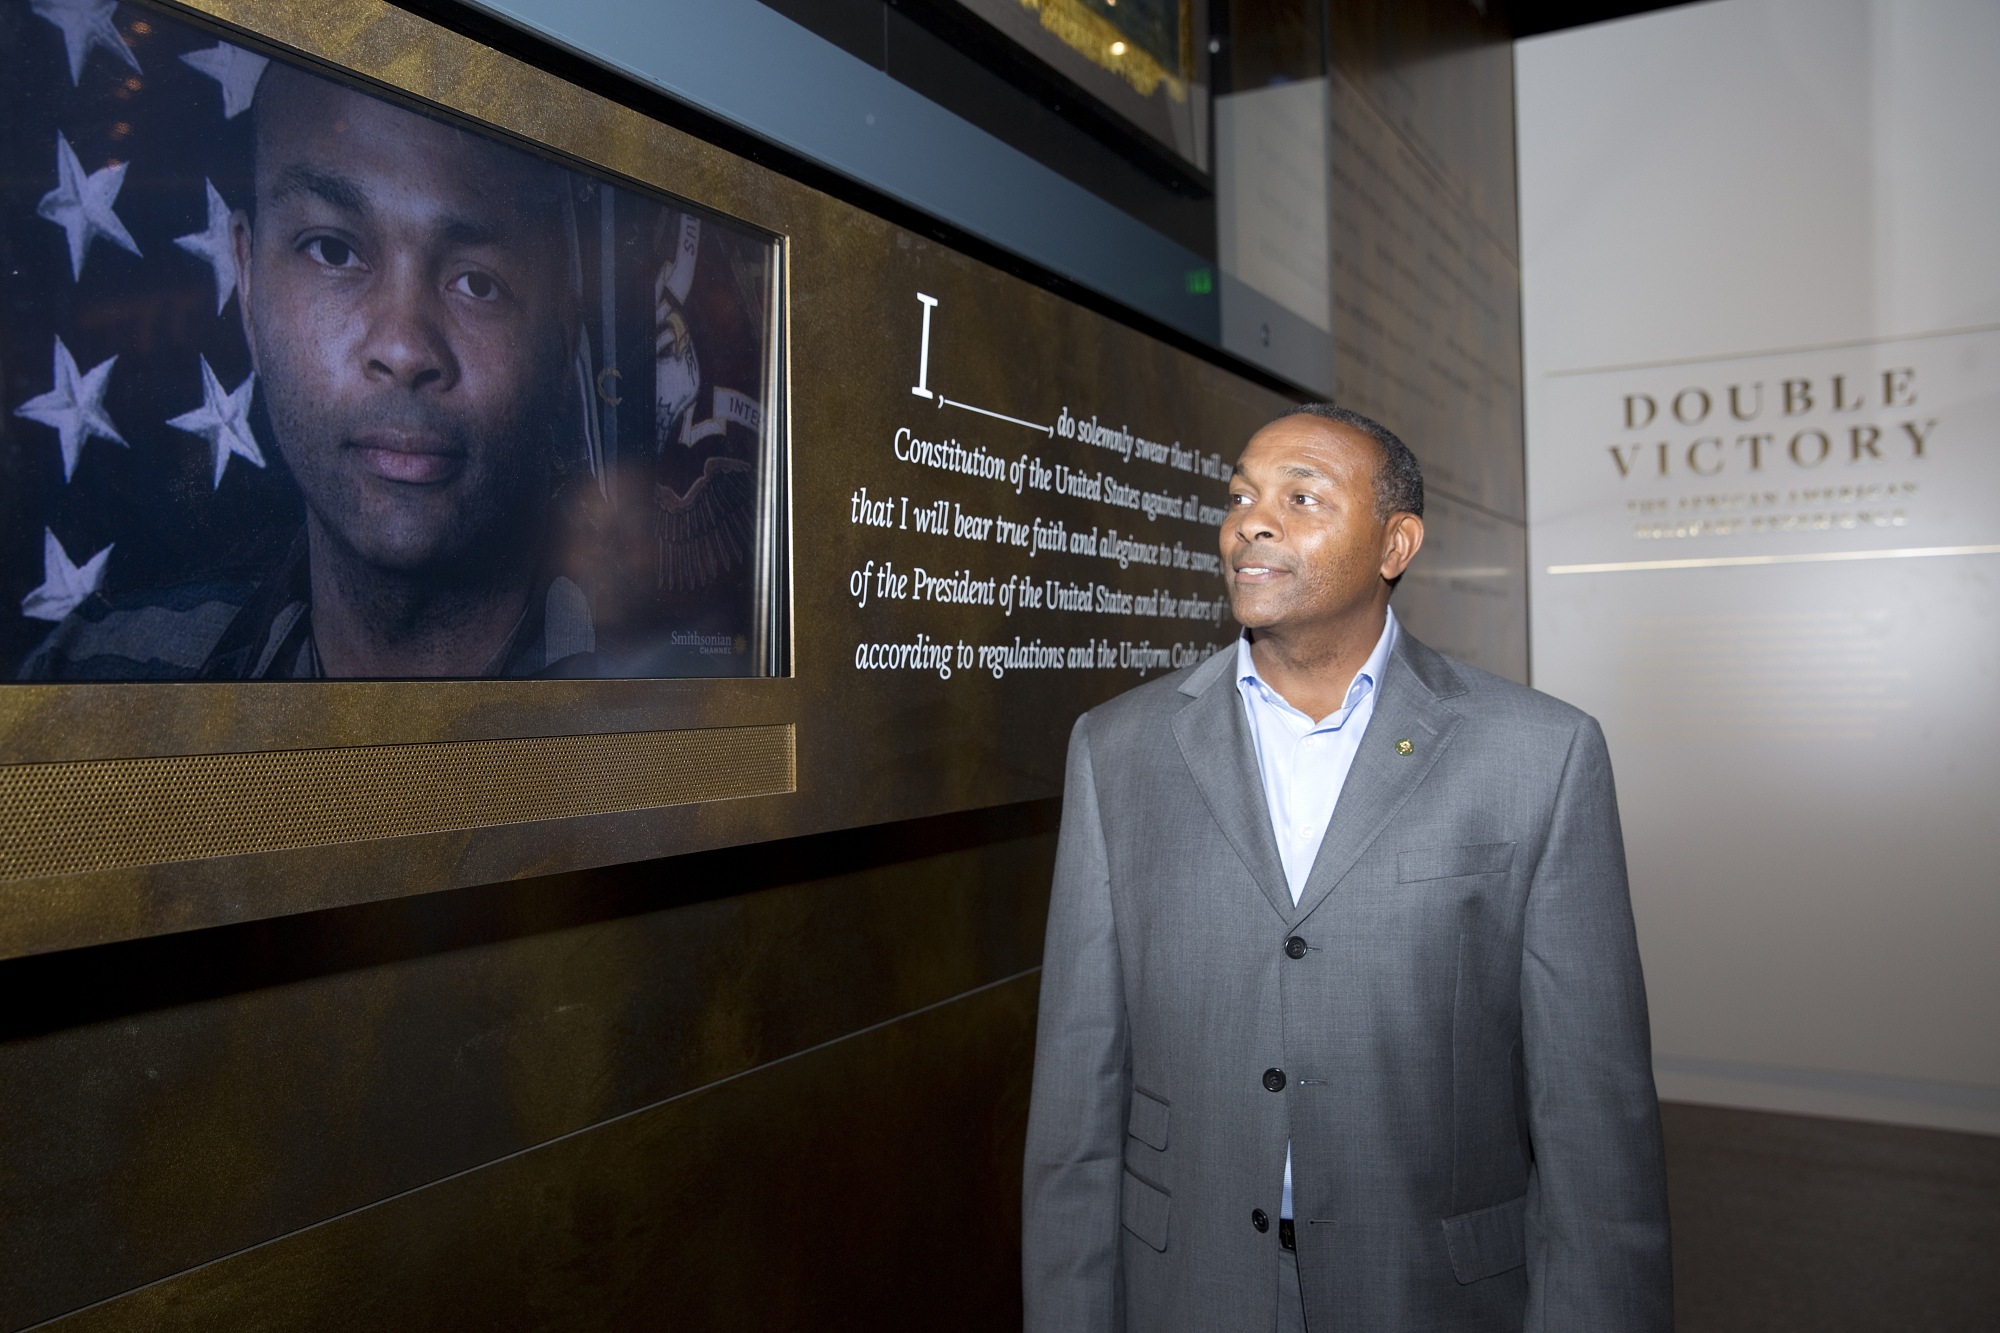 Visitor at Press Preview Featured in Military Exhibit, NMAAHC